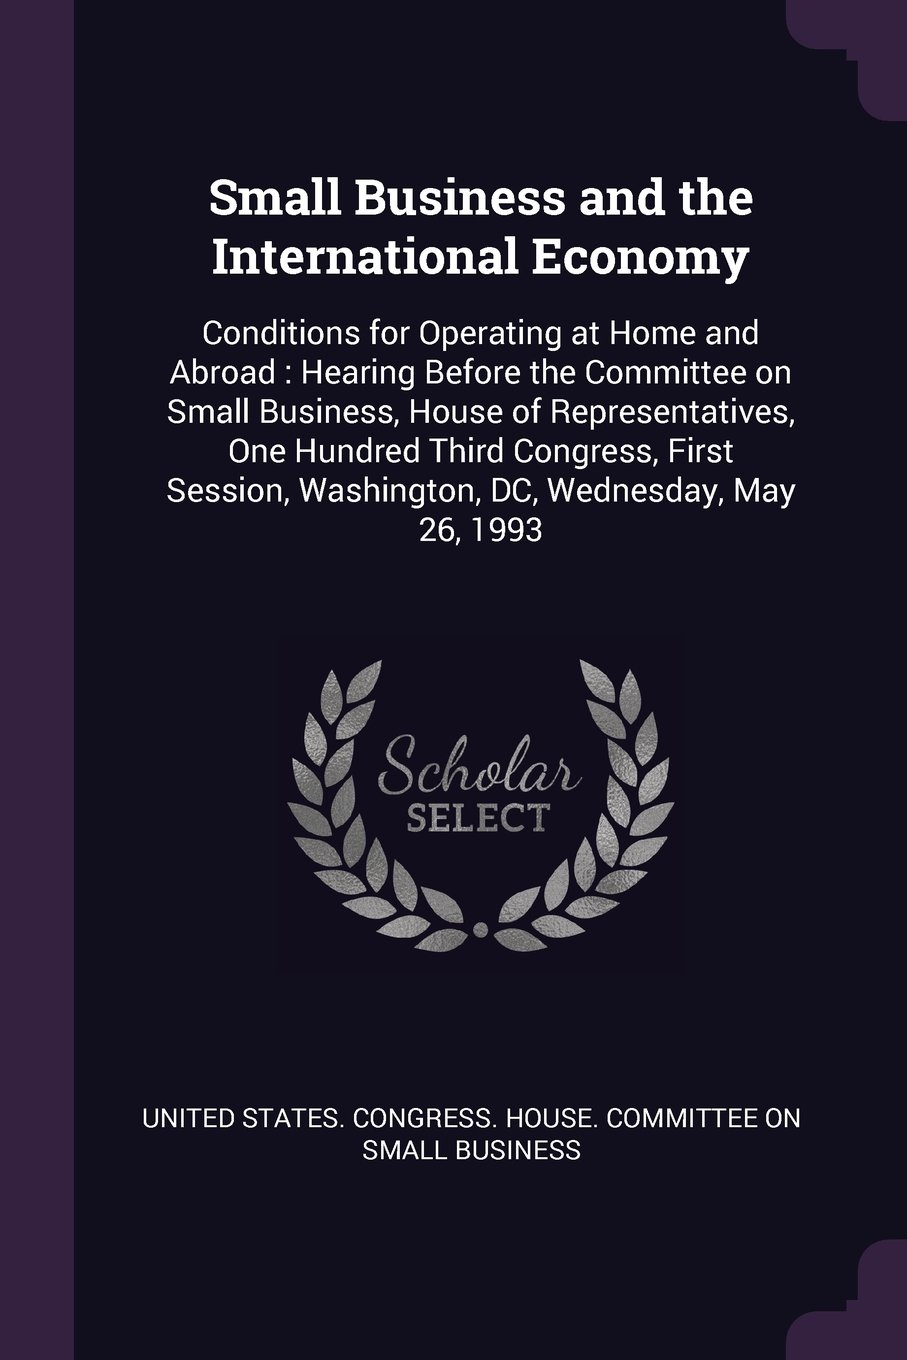 Small Business and the International Economy: Conditions for Operating at Home and Abroad : Hearing Before the Committee on Small Business, House of ... Washington, DC, Wednesday, May 26, 1993 ebook